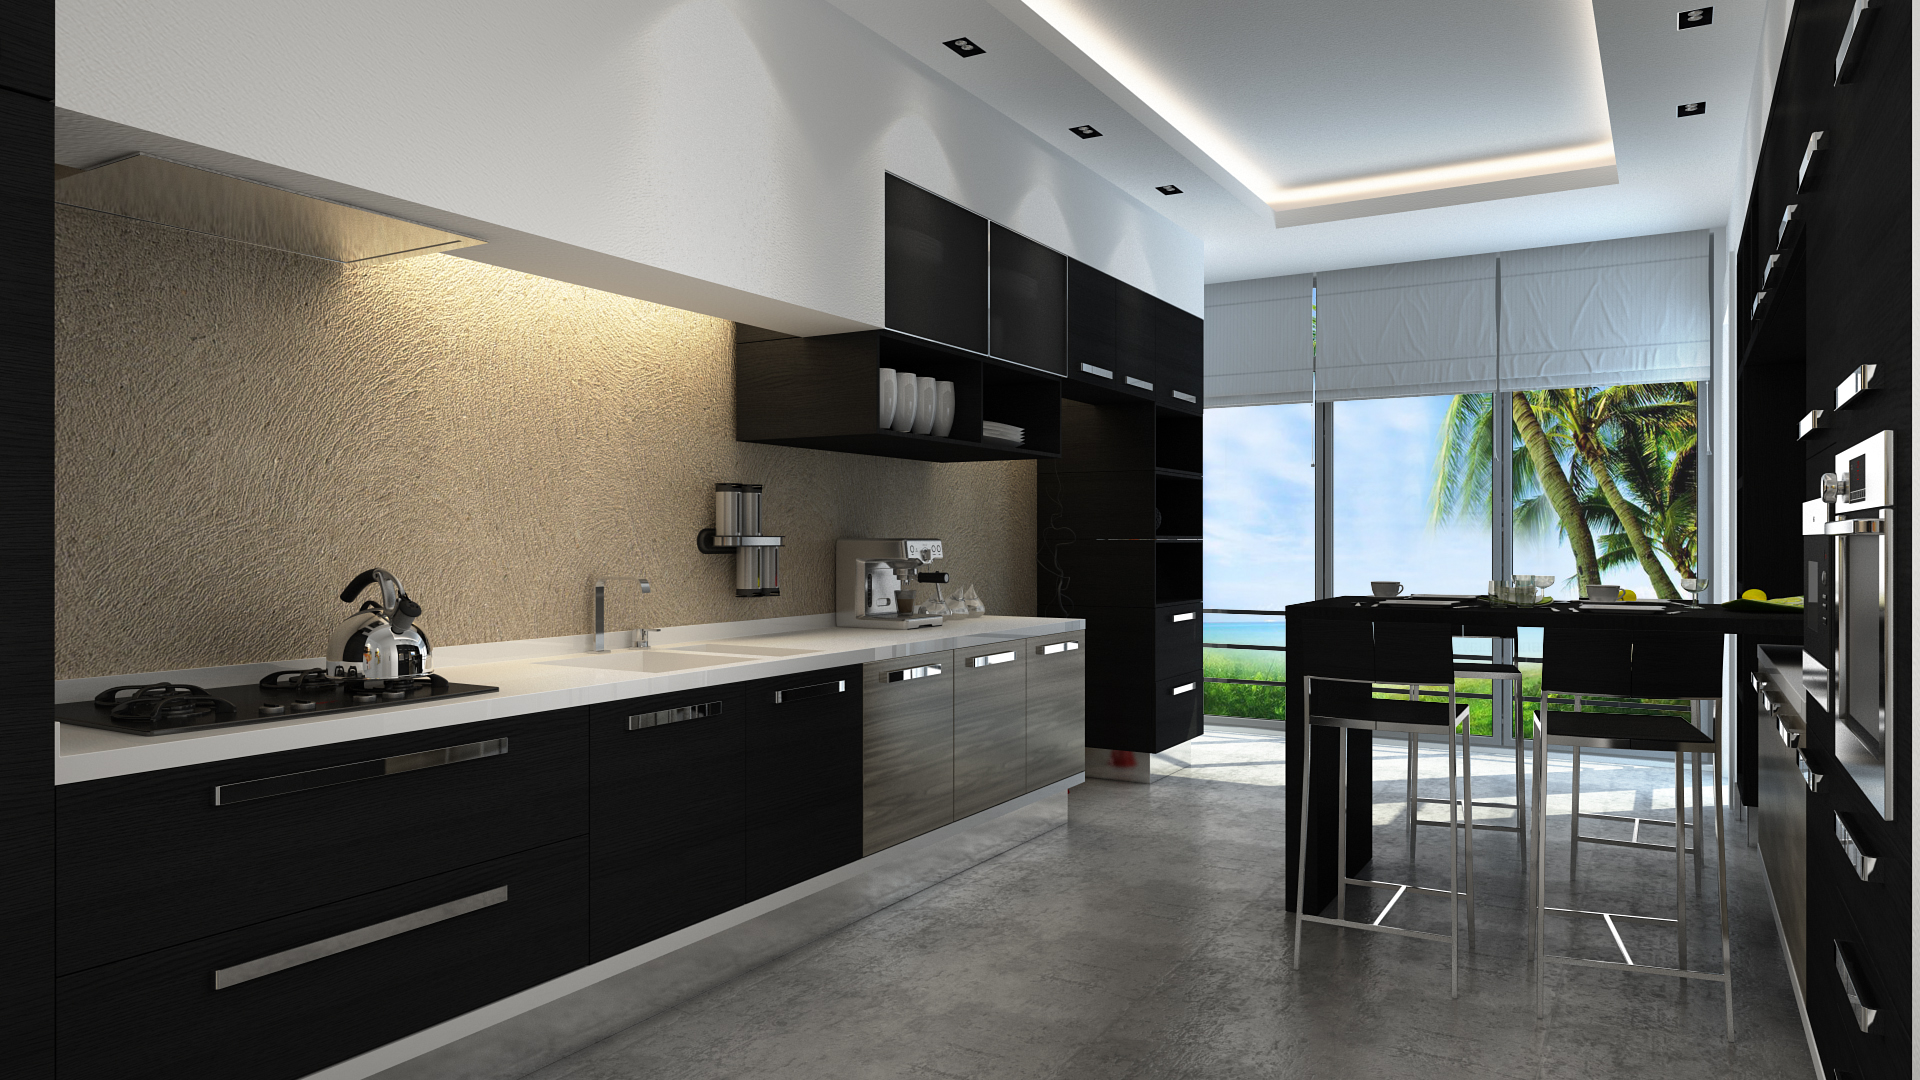 mutfak black kitchen 02 by vrlosilepa on deviantart. Black Bedroom Furniture Sets. Home Design Ideas